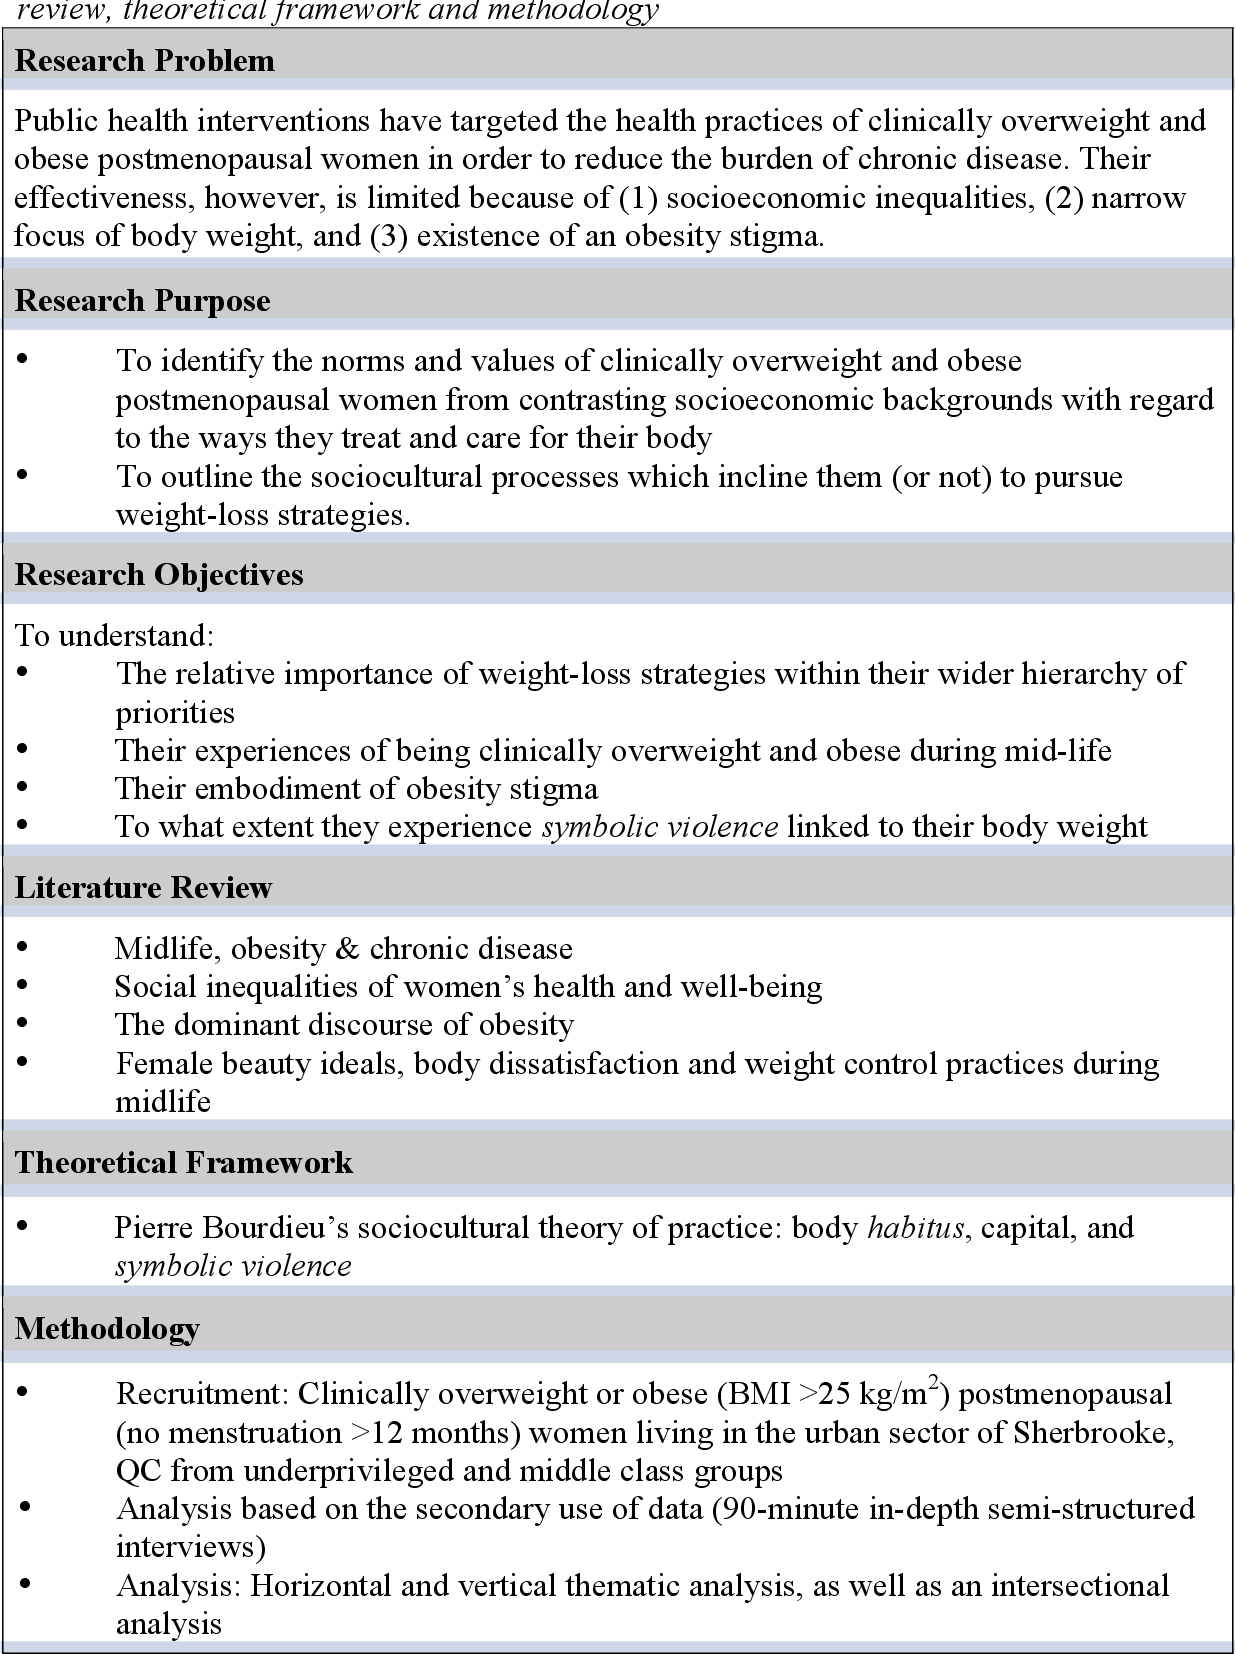 Pdf Facing The Challenges Of Female Obesity During Midlife Social Inequality Weight Control And Stigma In Clinically Overweight And Obese Women Semantic Scholar